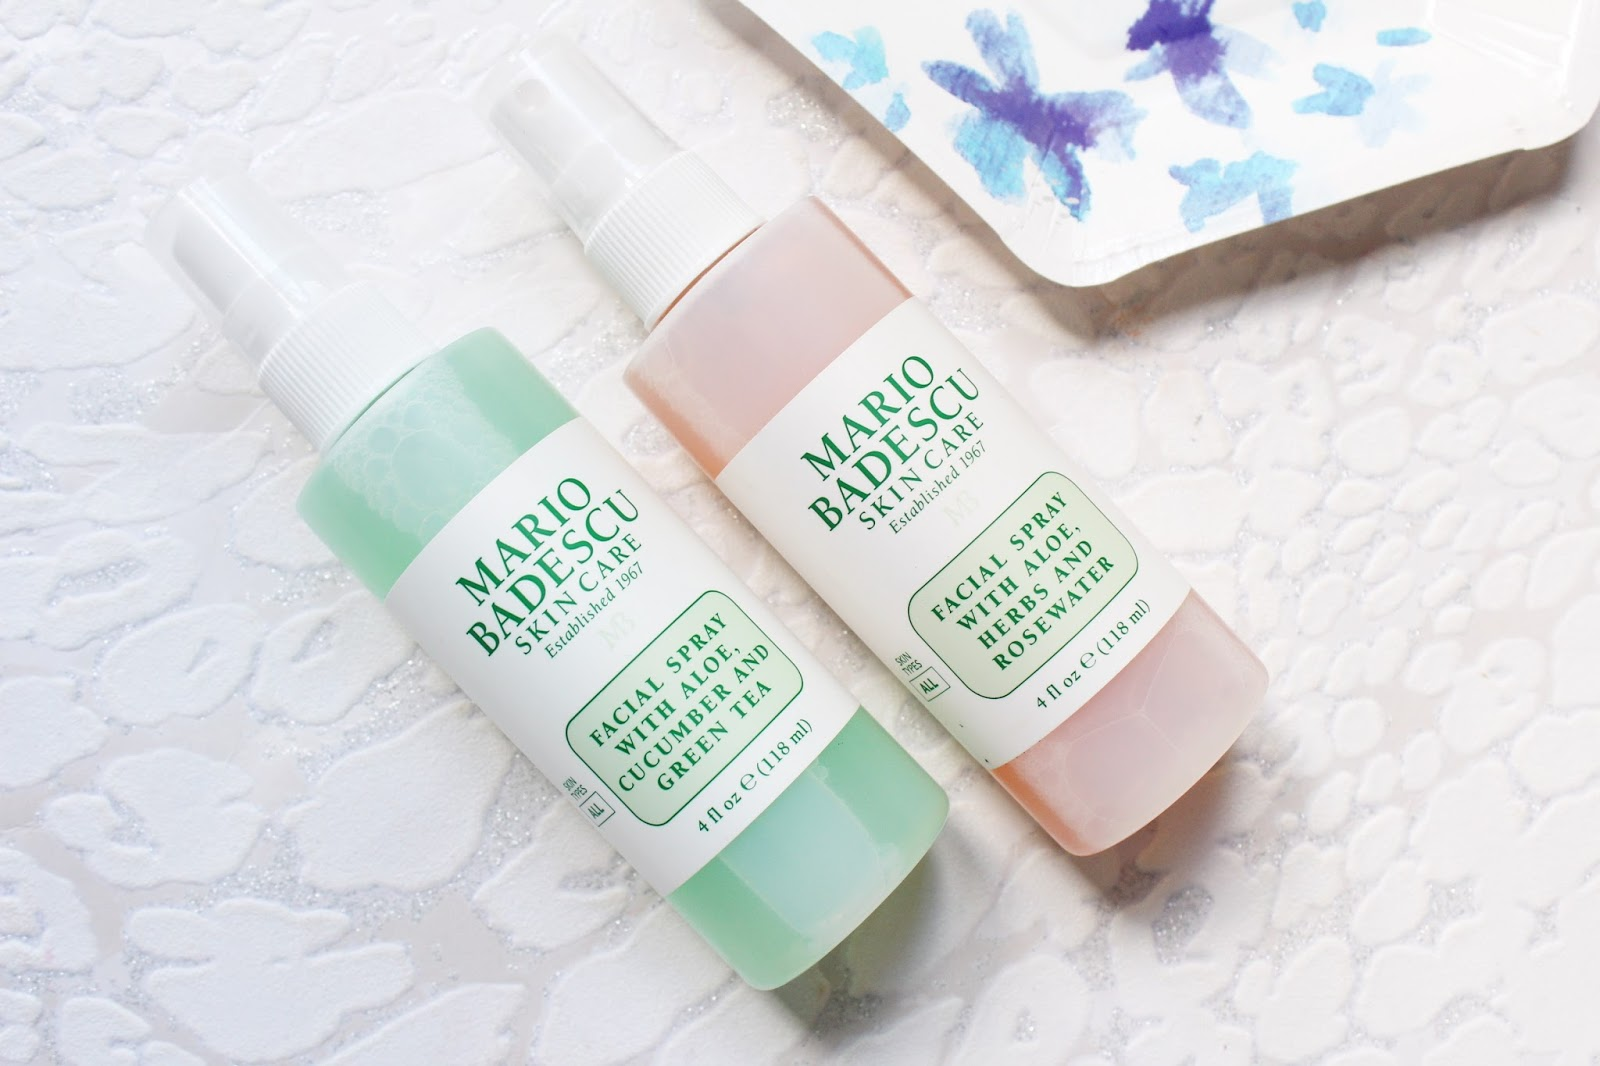 Mario Badescu Facial Sprays